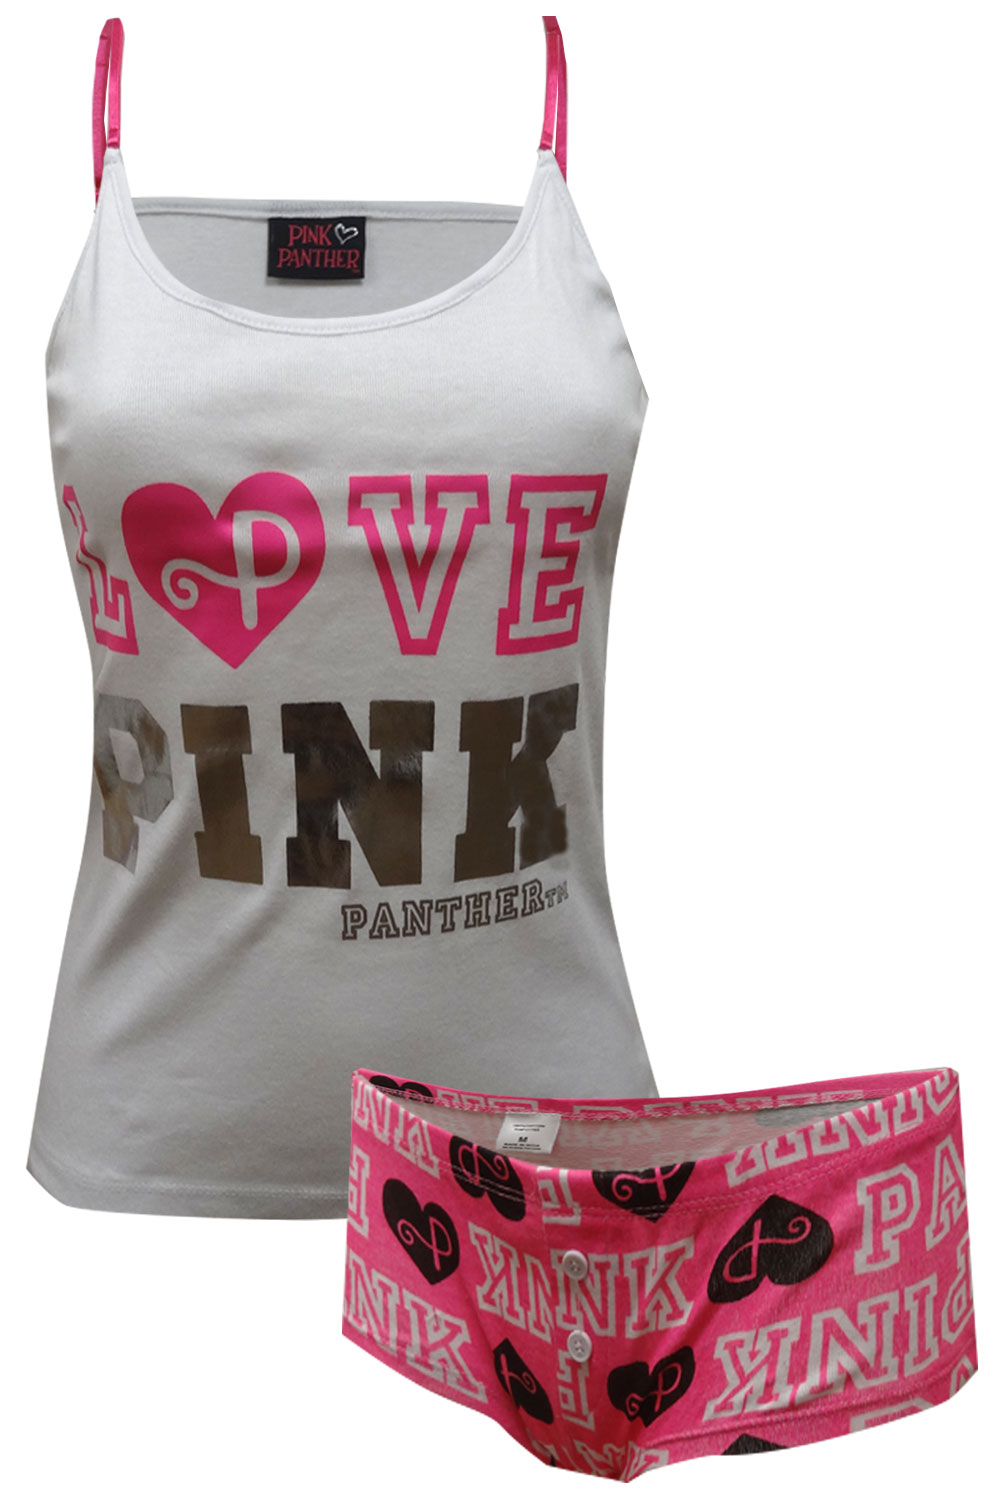 LOVE PINK Panther White and Hot Pink Shortie Pajama for women